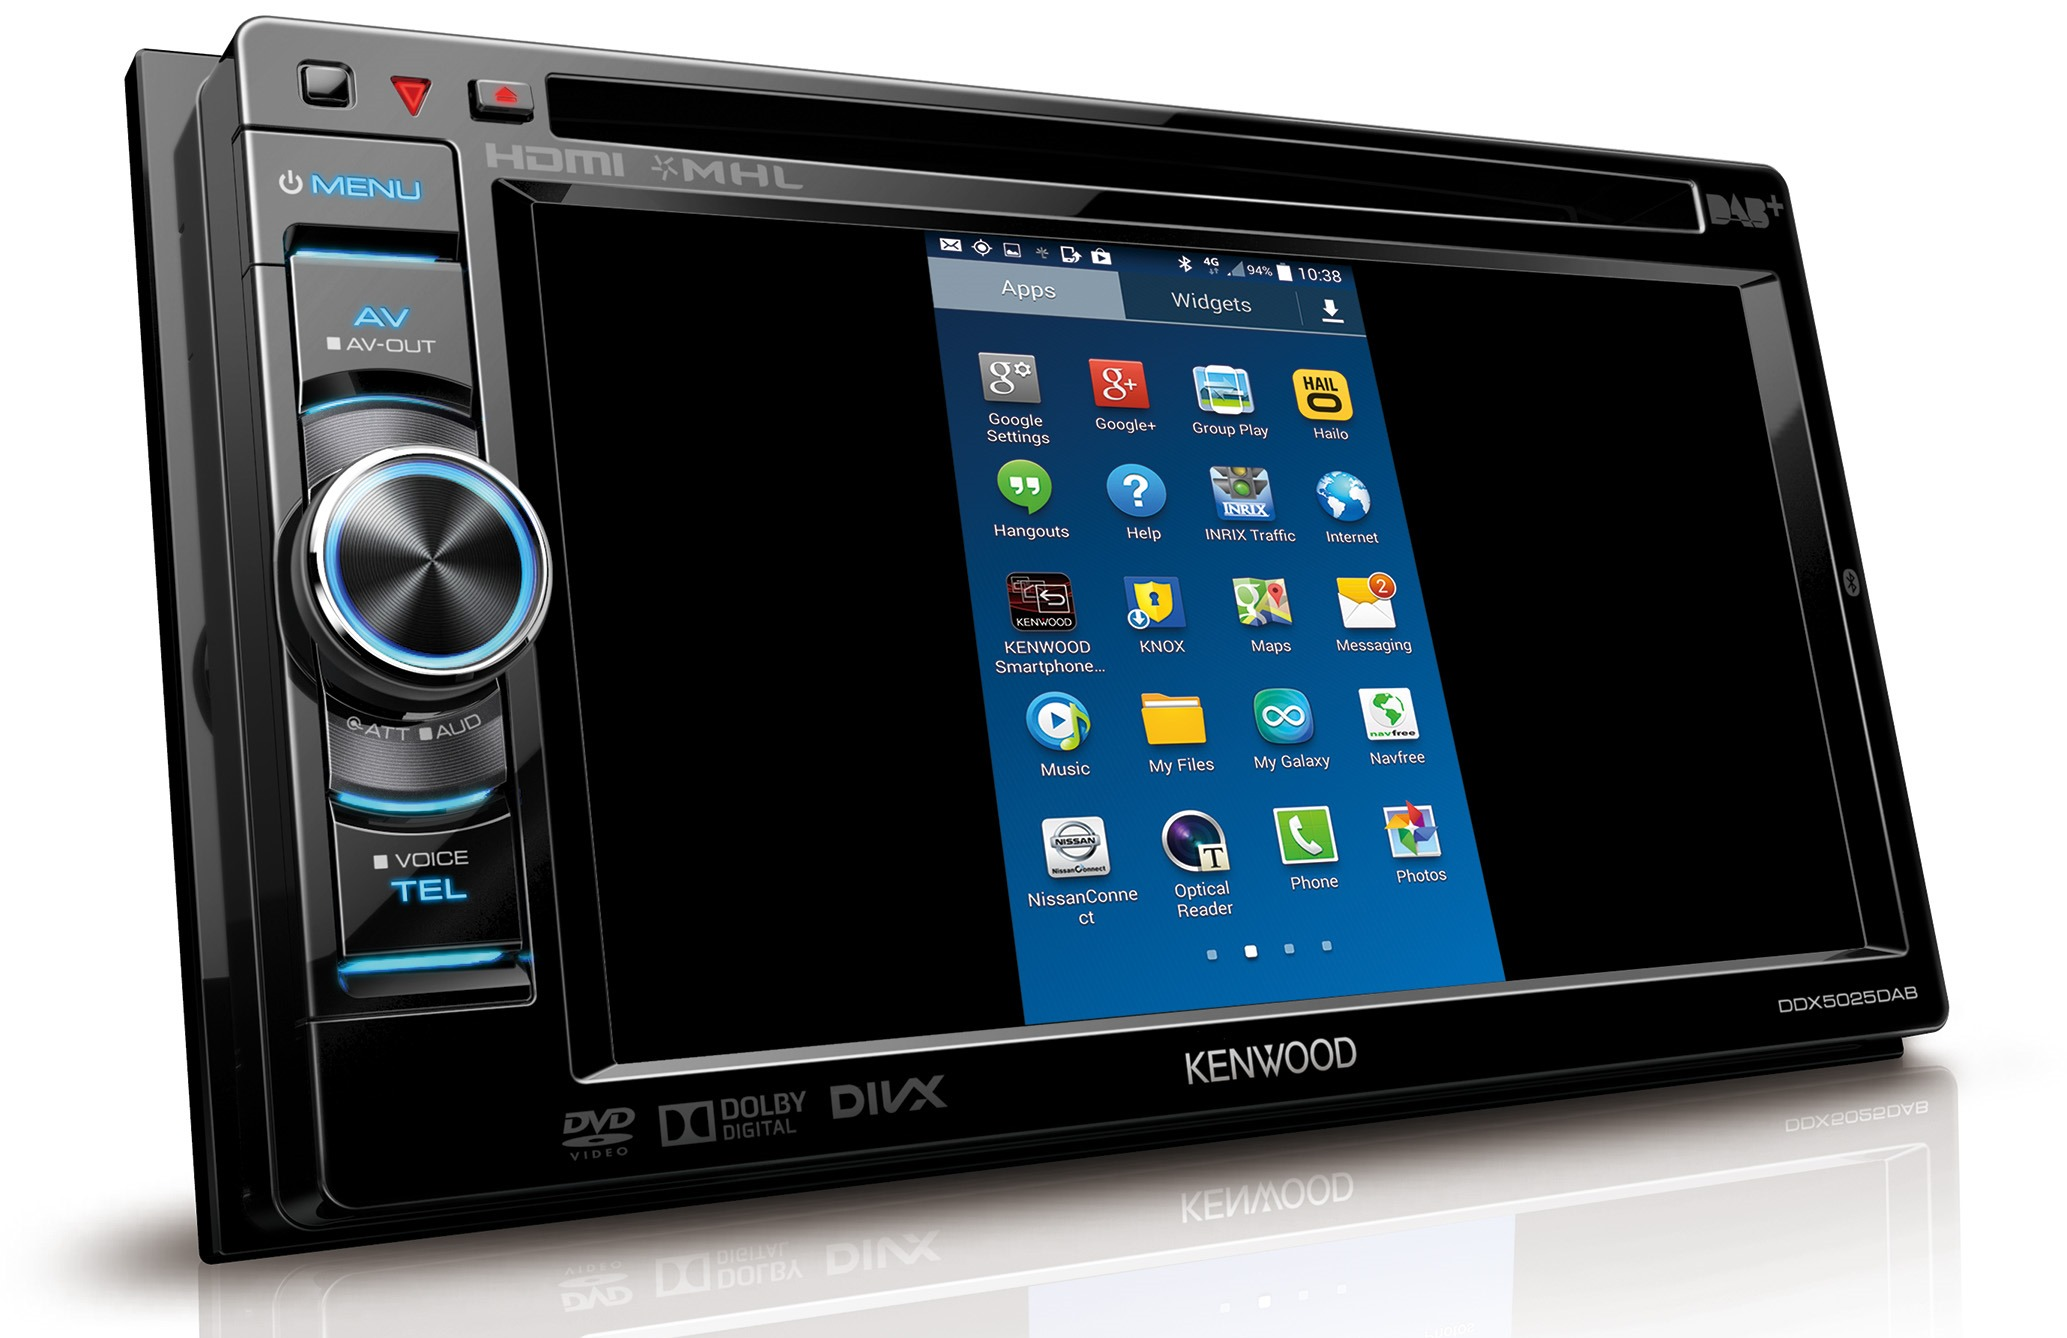 kenwood ddx5025dab kenwood car audio entertainment. Black Bedroom Furniture Sets. Home Design Ideas